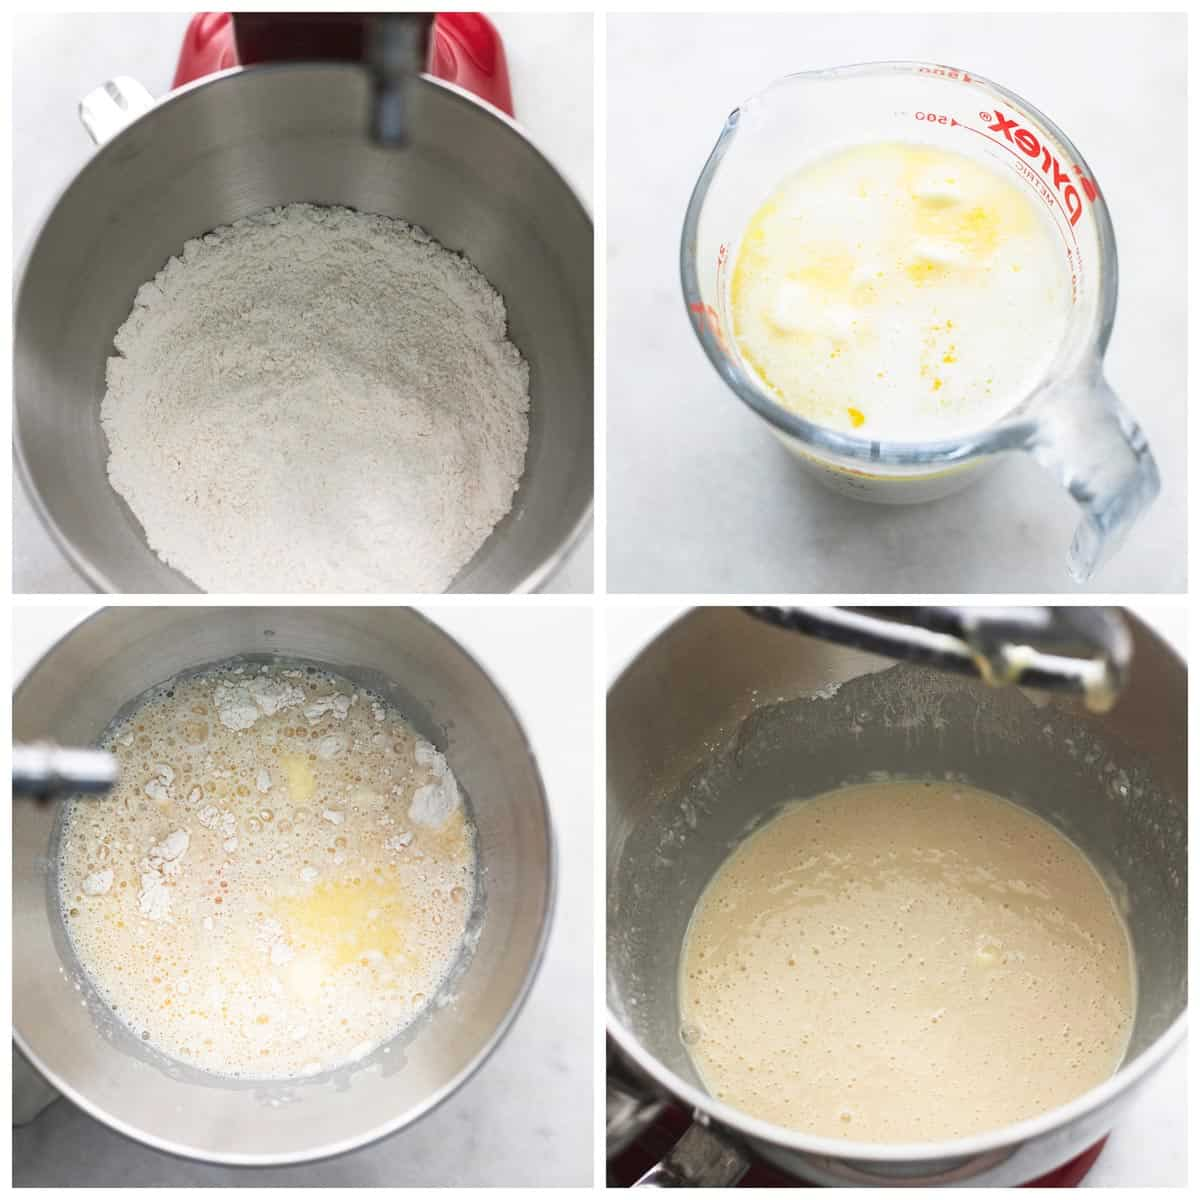 collage of four images showing steps of cinnamon roll making